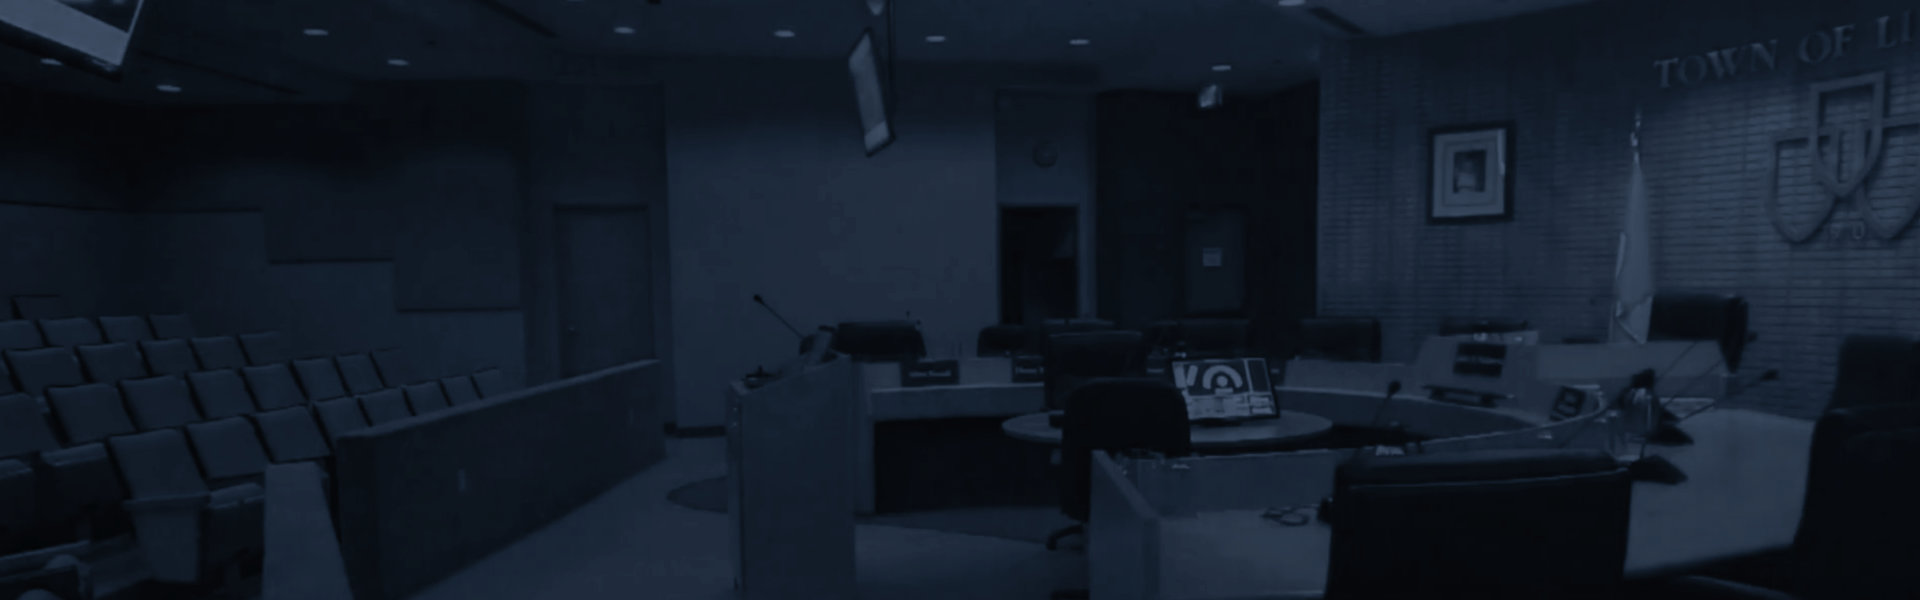 Town of Lincoln – Audio Visual Control Systems